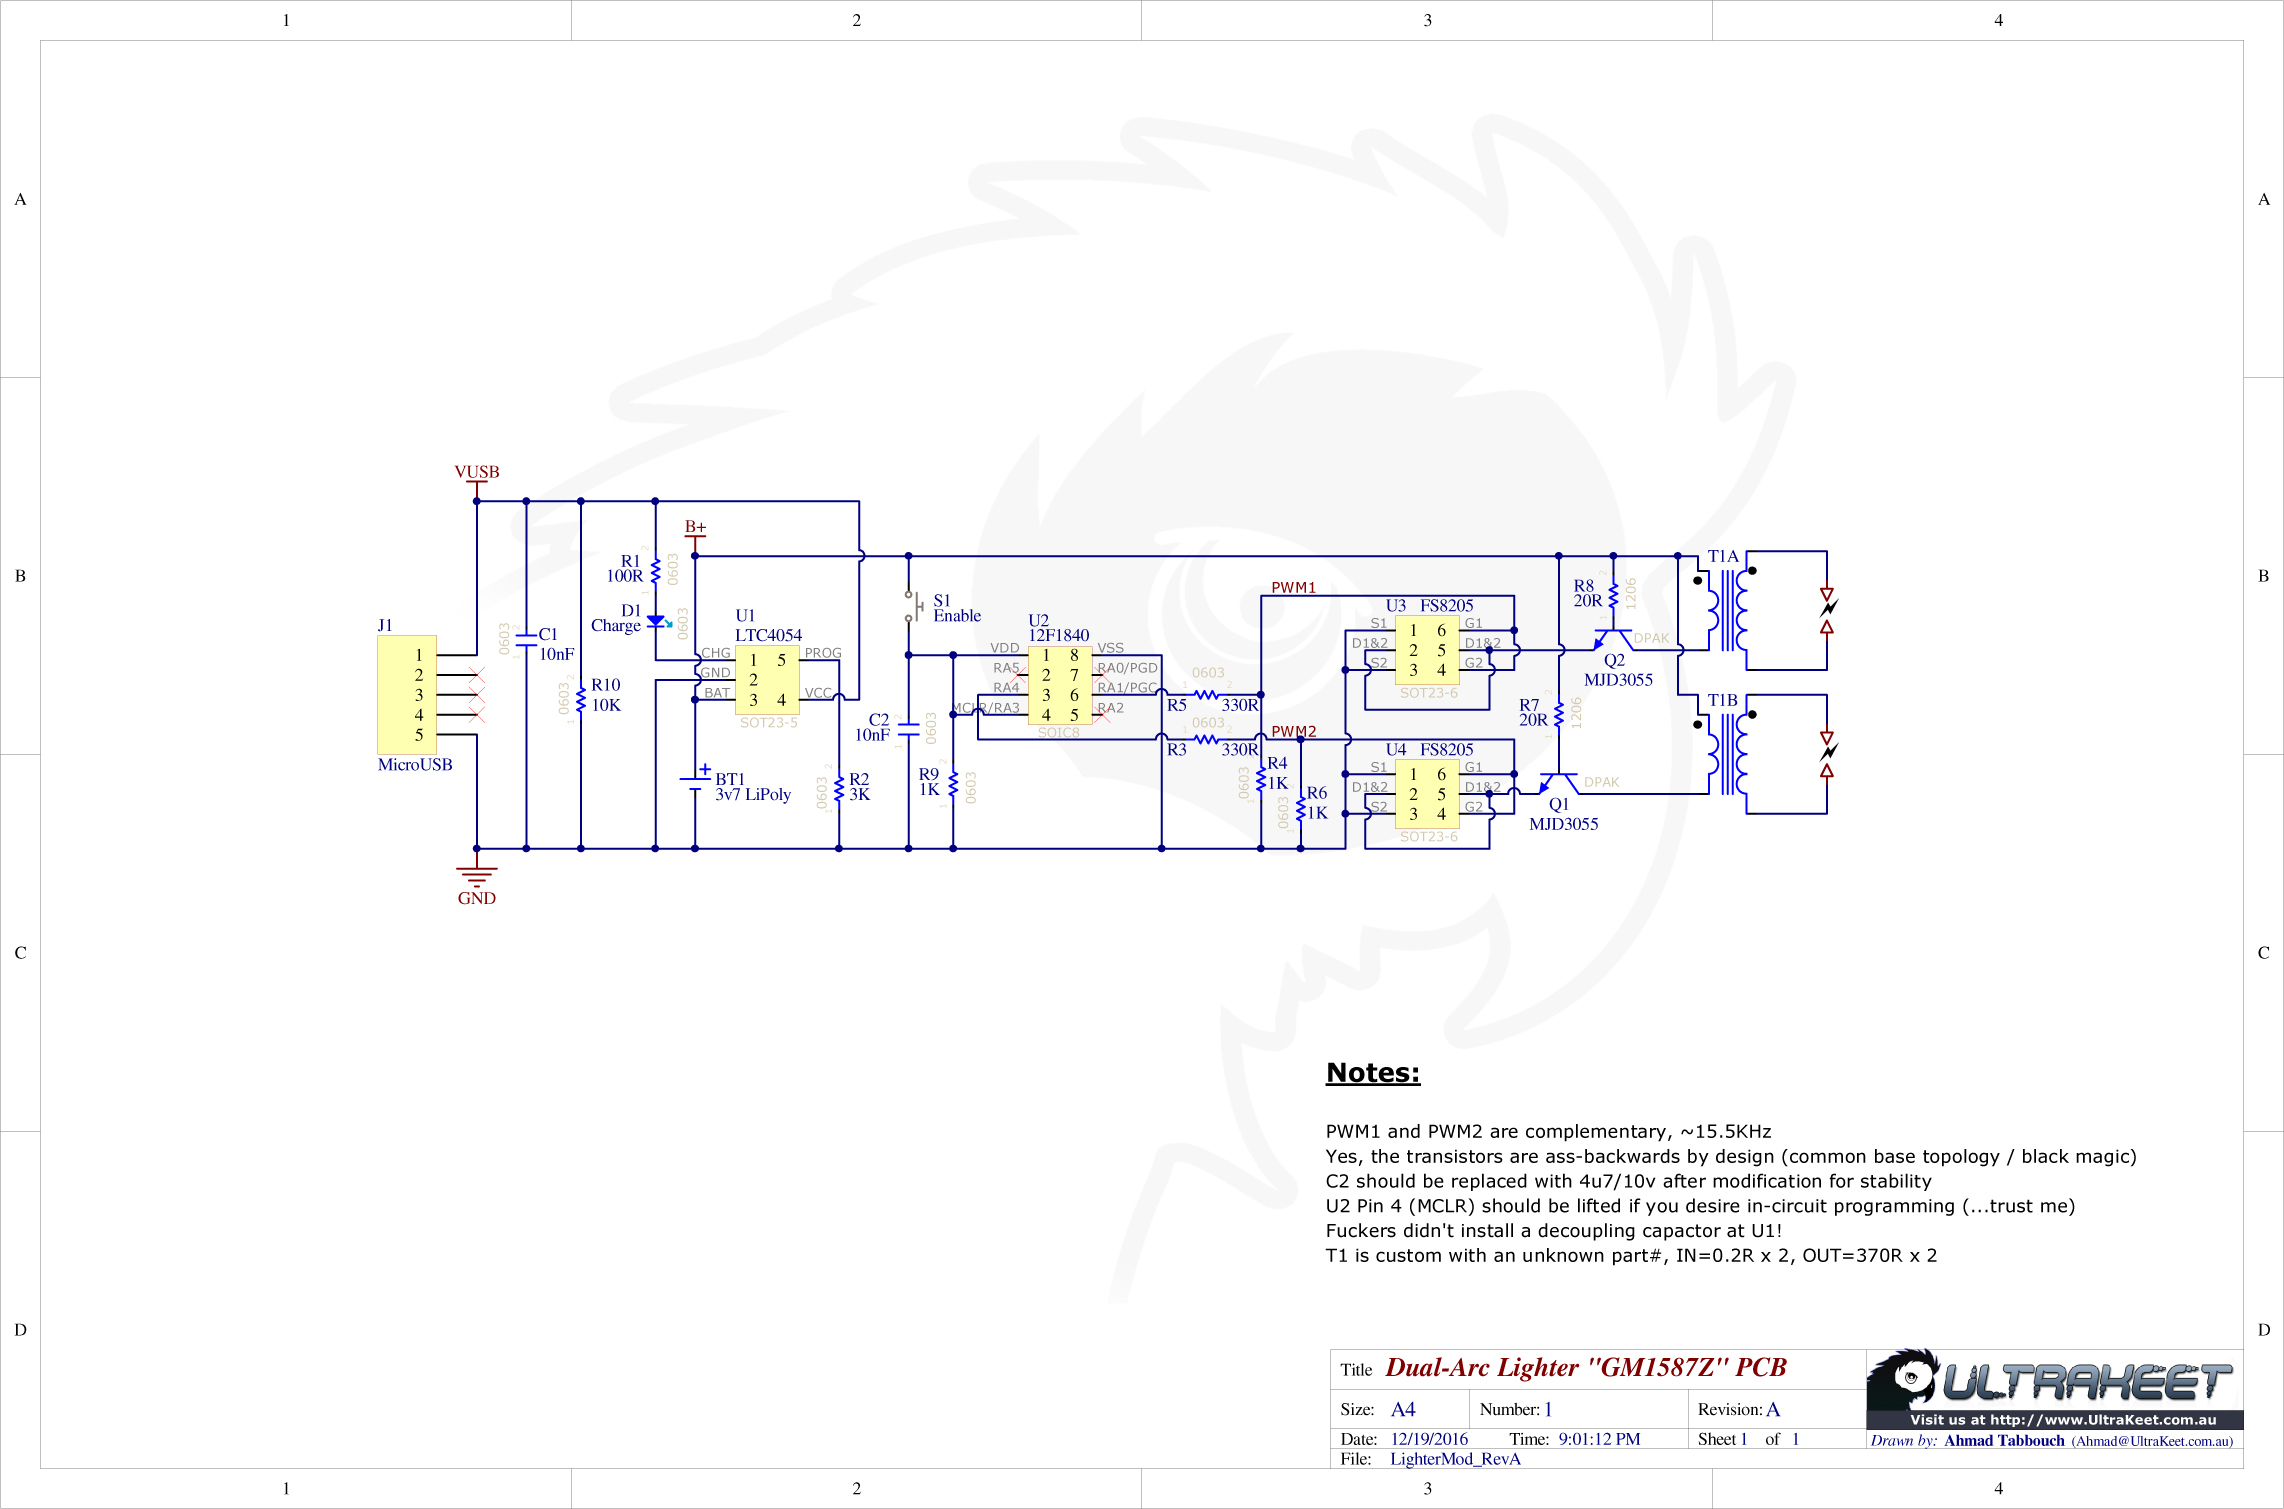 Donsdeals Blog Reply To A Comment On My Dynaco Stereo 400 Power Fai 3a Wiring Diagram Scosche Line Out Converter Lighter Schematic Jpeg Image 2284 1509 Pixels